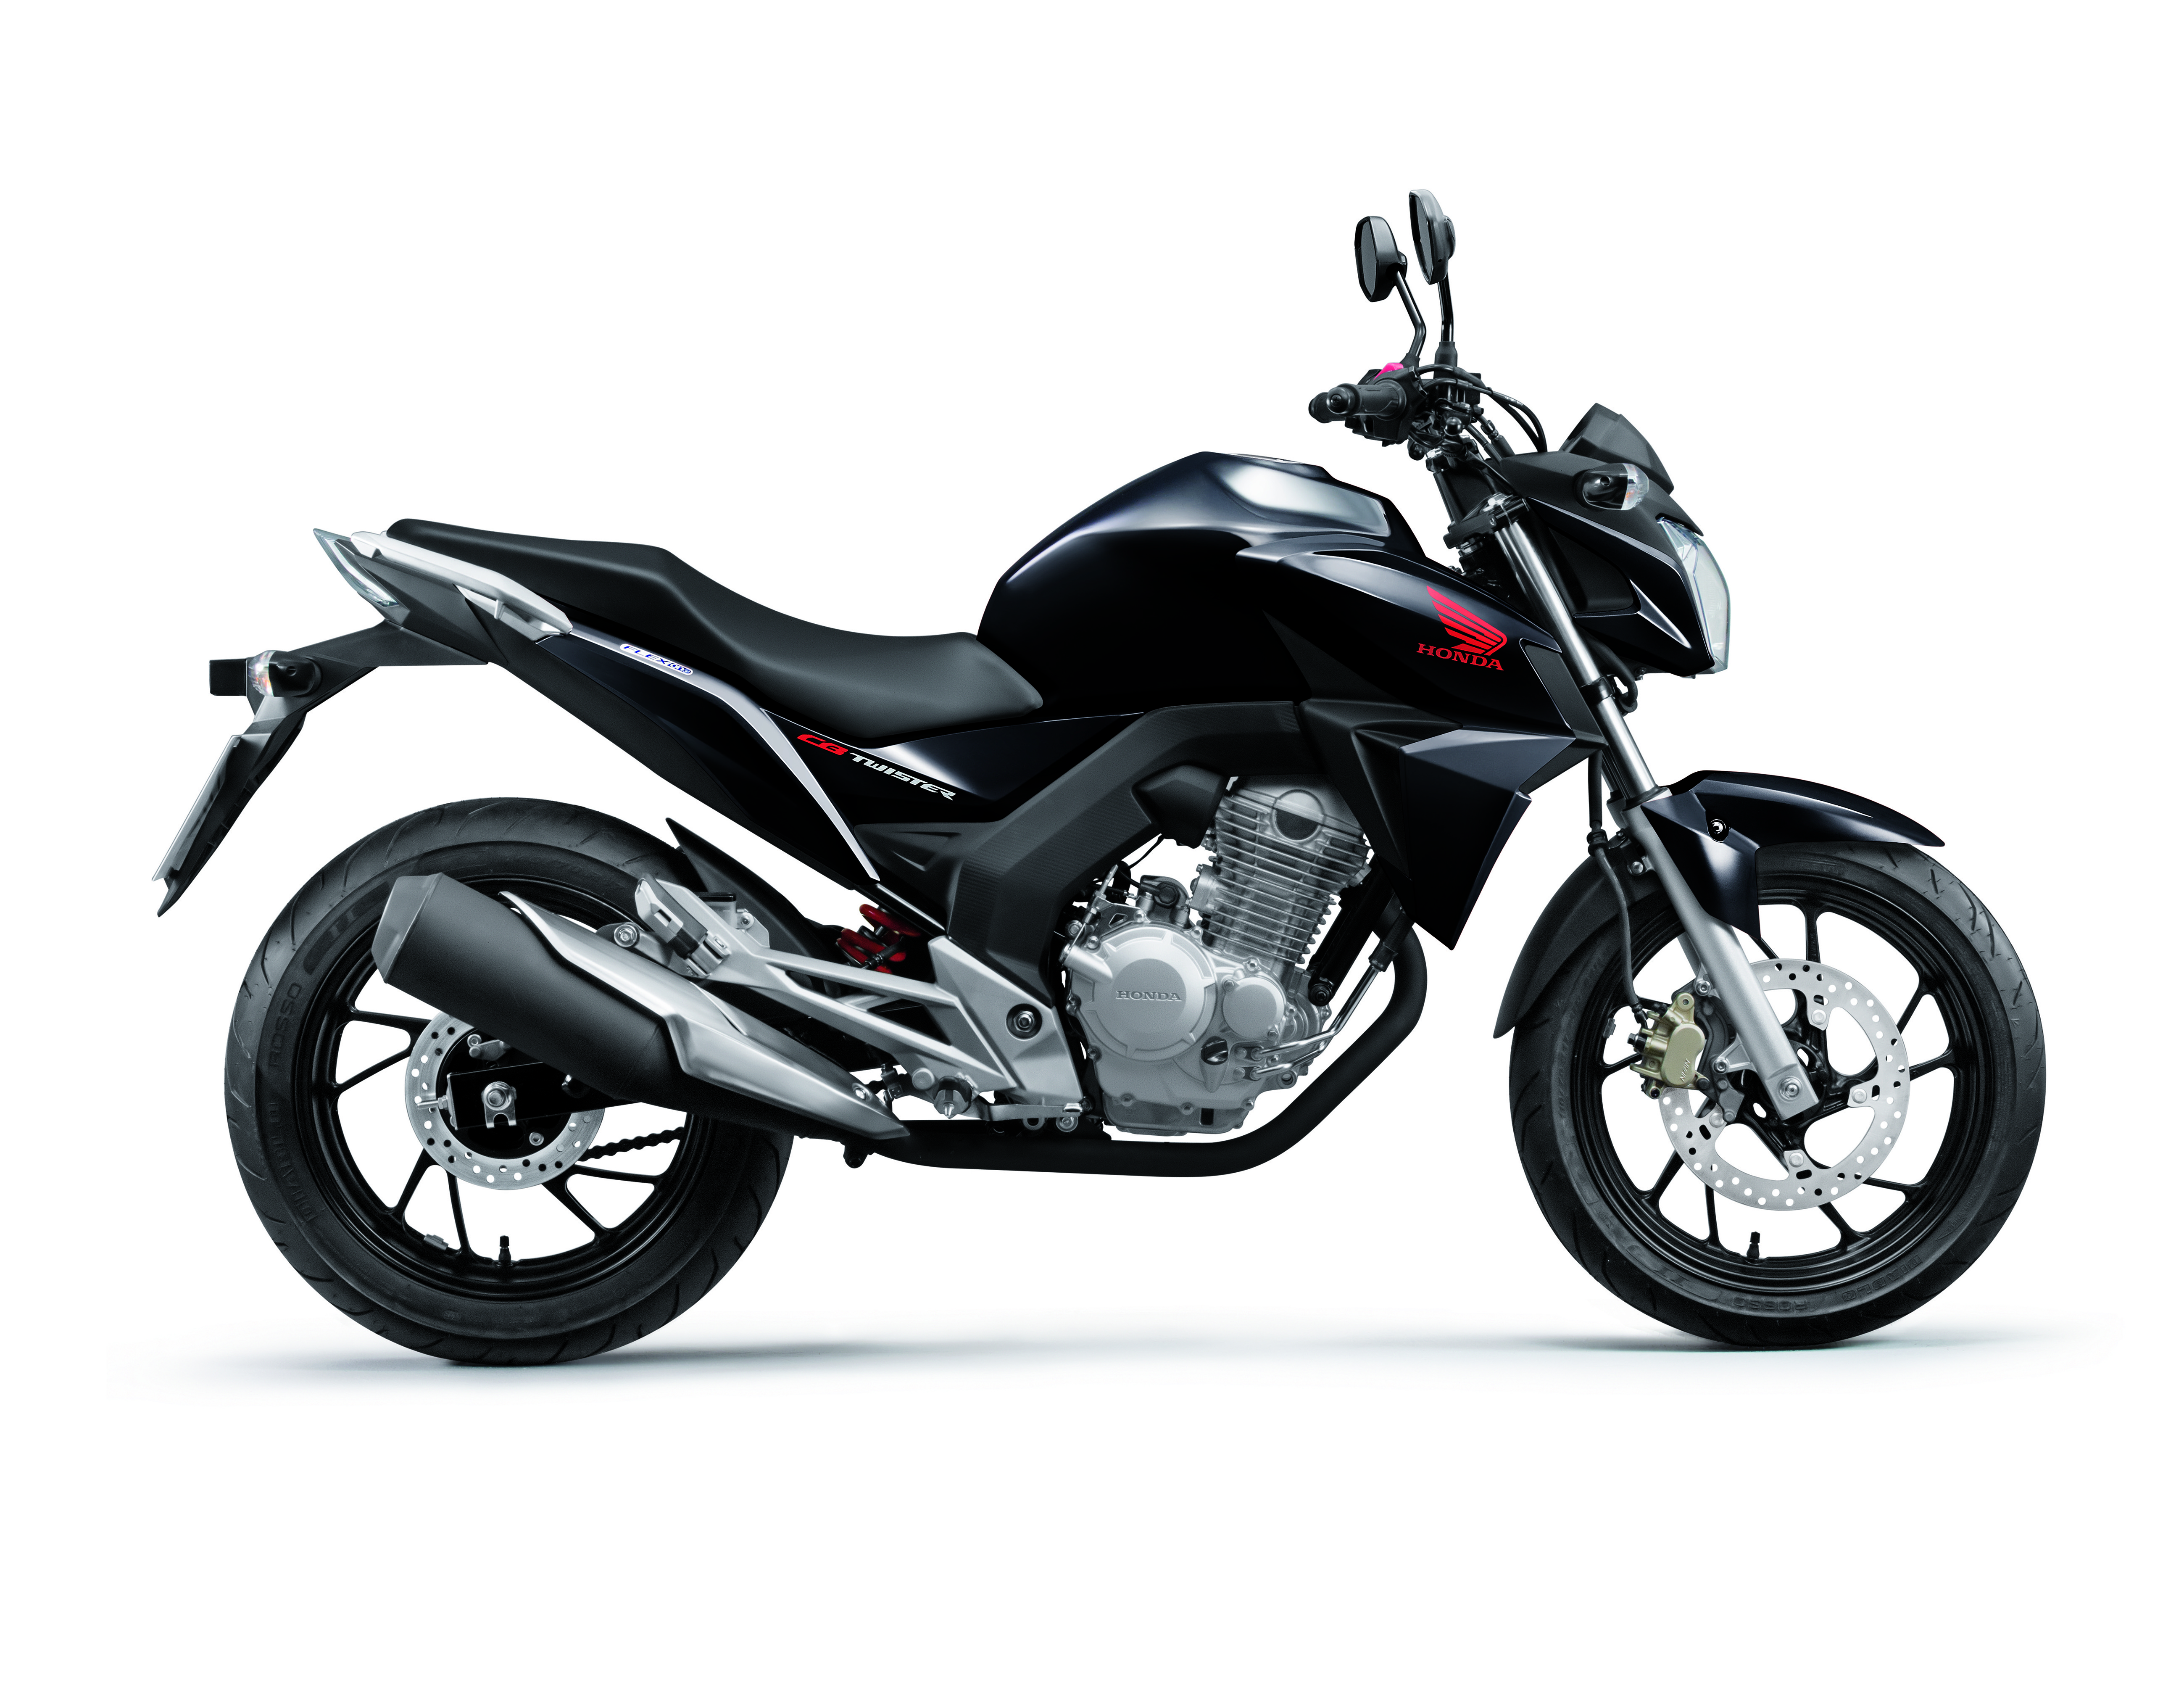 honda cb 100 with Cb 250f Twister 2016 on CG 125 Fan 2005 likewise E8a3b881d96404a1 furthermore Image 1966620 together with Honda Cb Twister 2018 Tem Preco Inicial De R 14 100 additionally Watch.